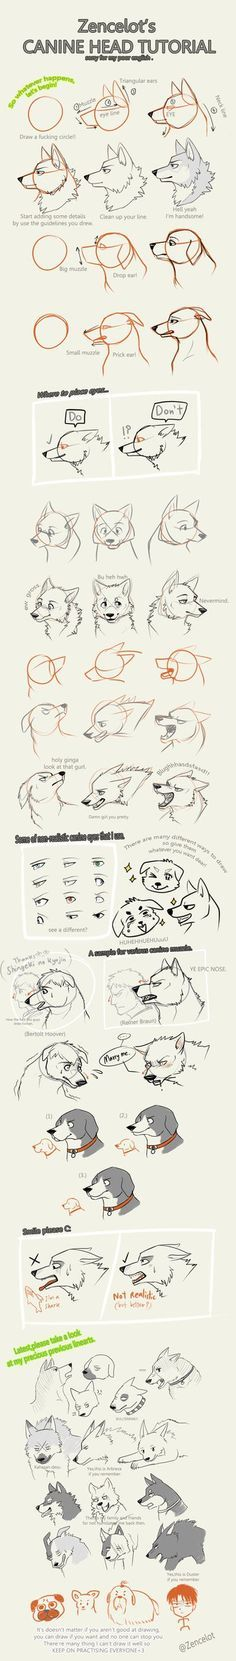 canine drawings